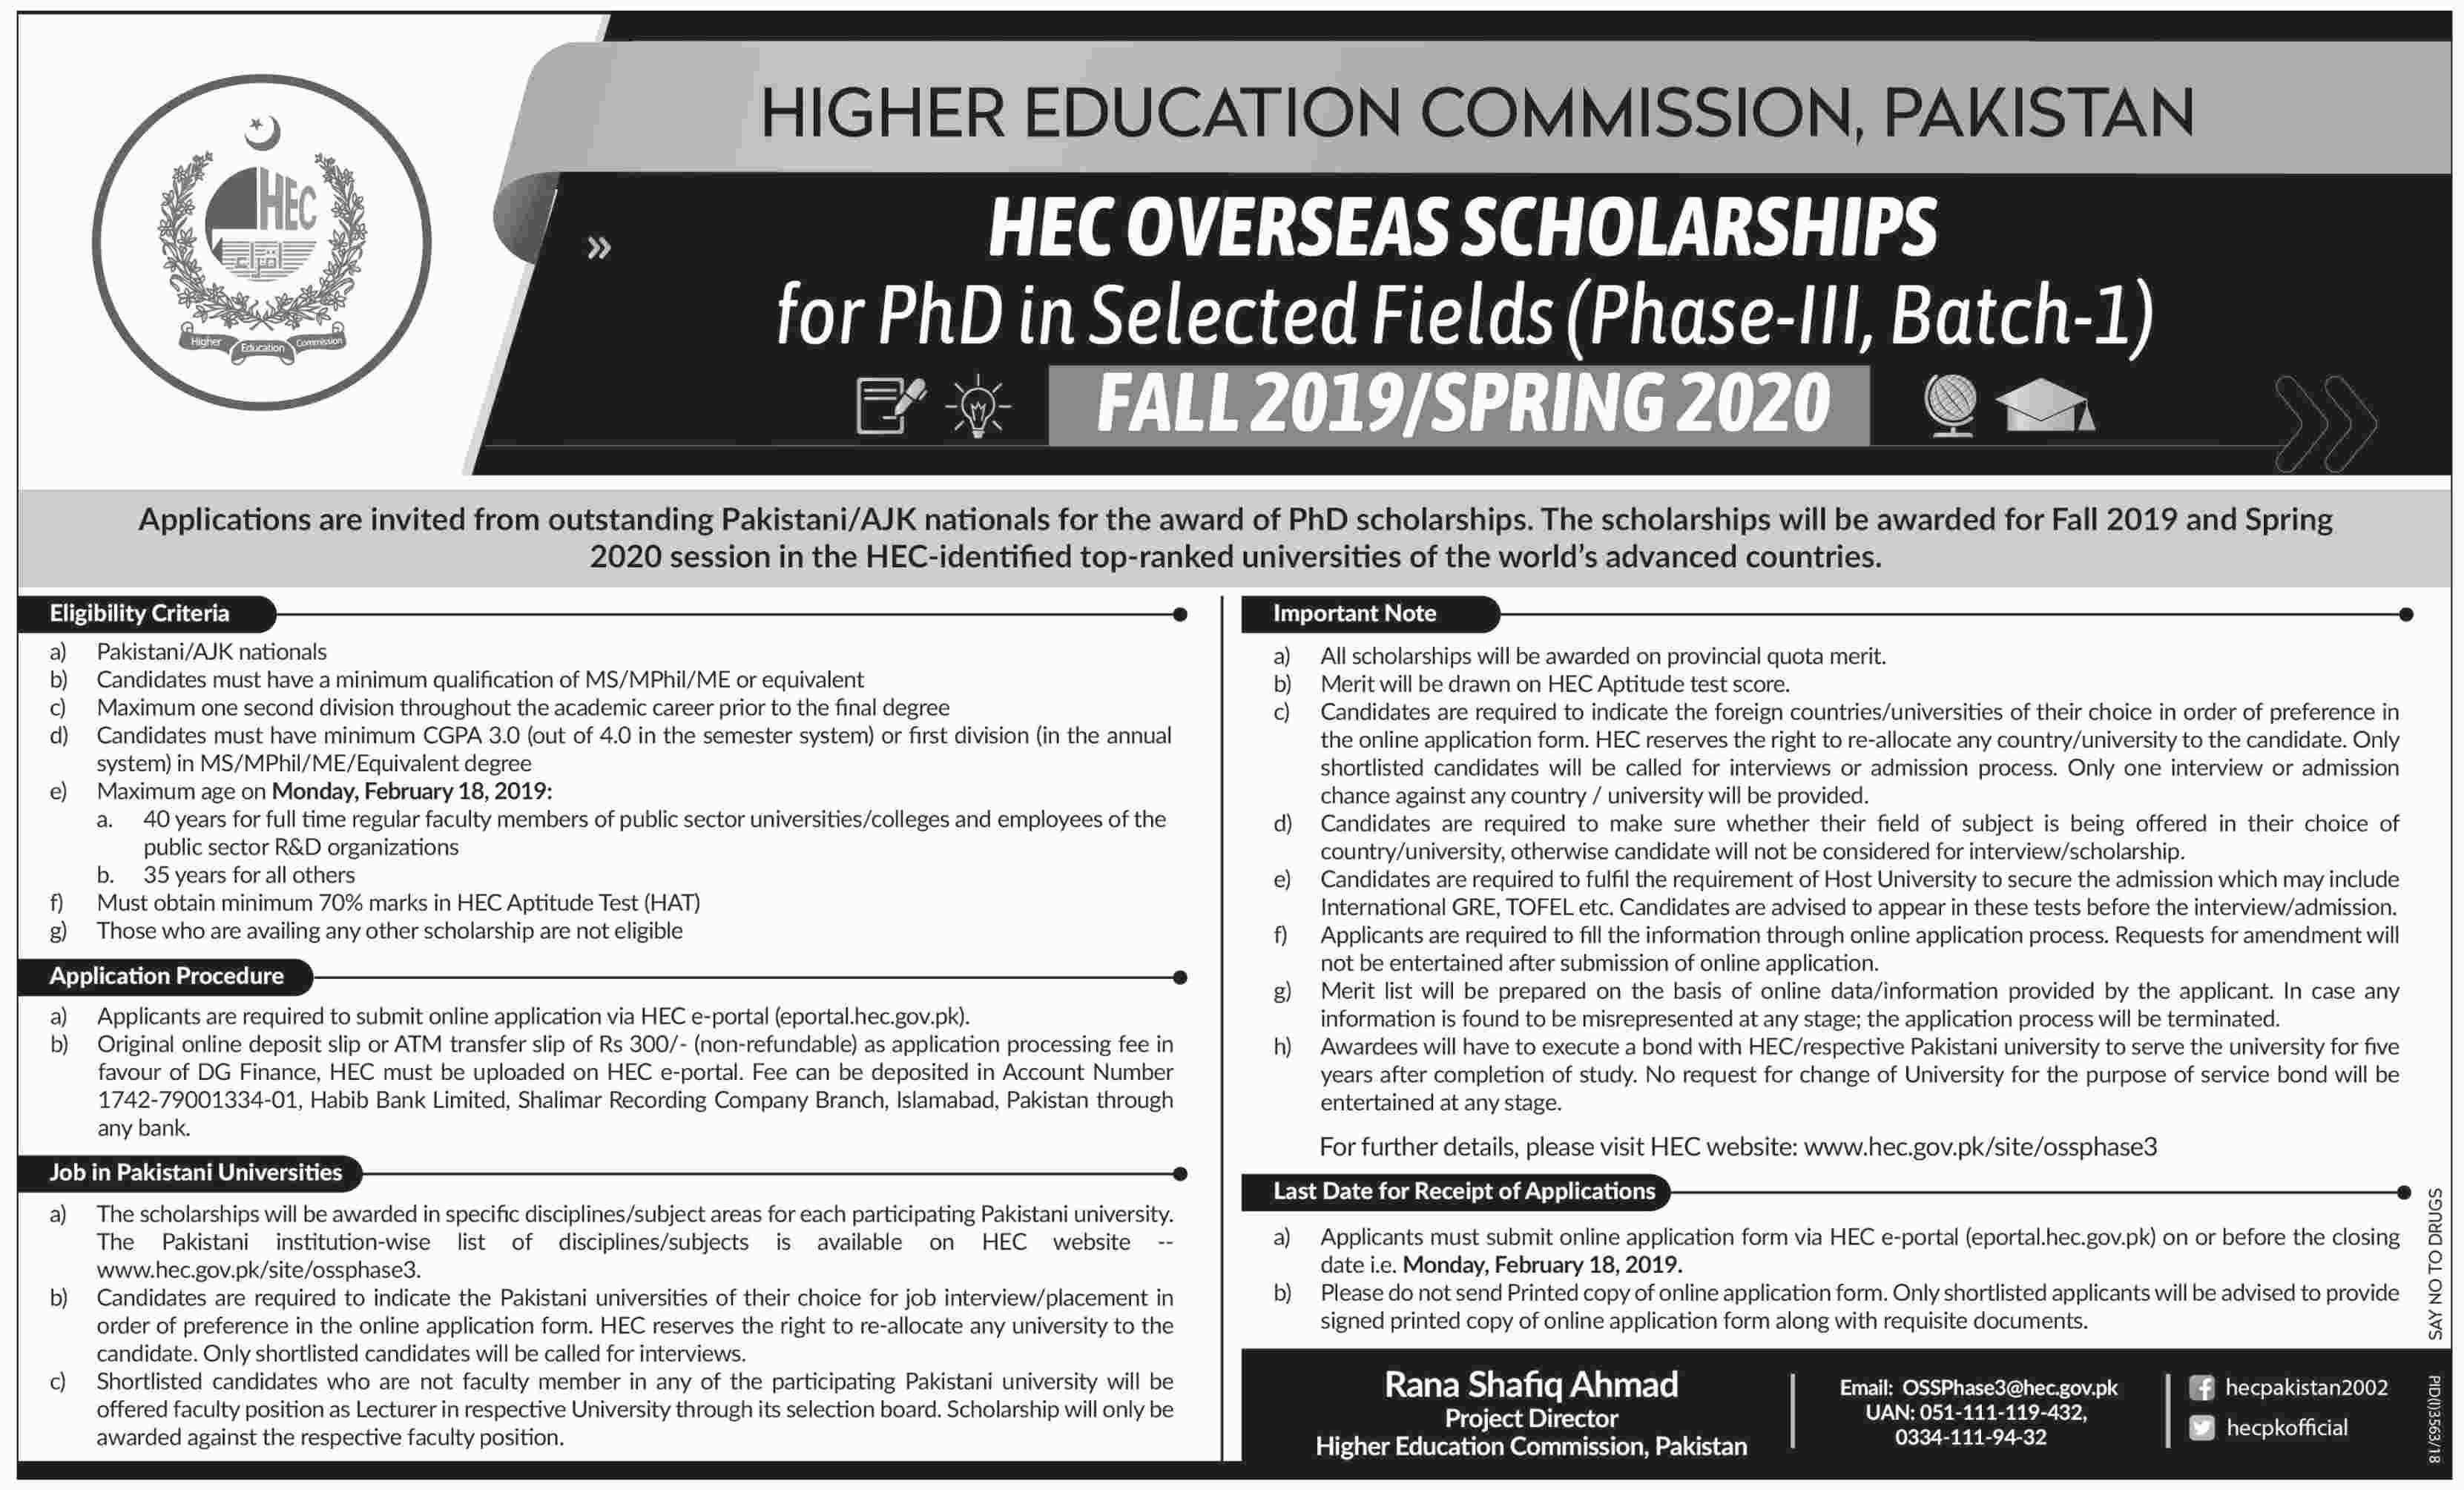 HEC Overseas Scholarships for PhD in Selected Fields (Phase-III, Batch-I)